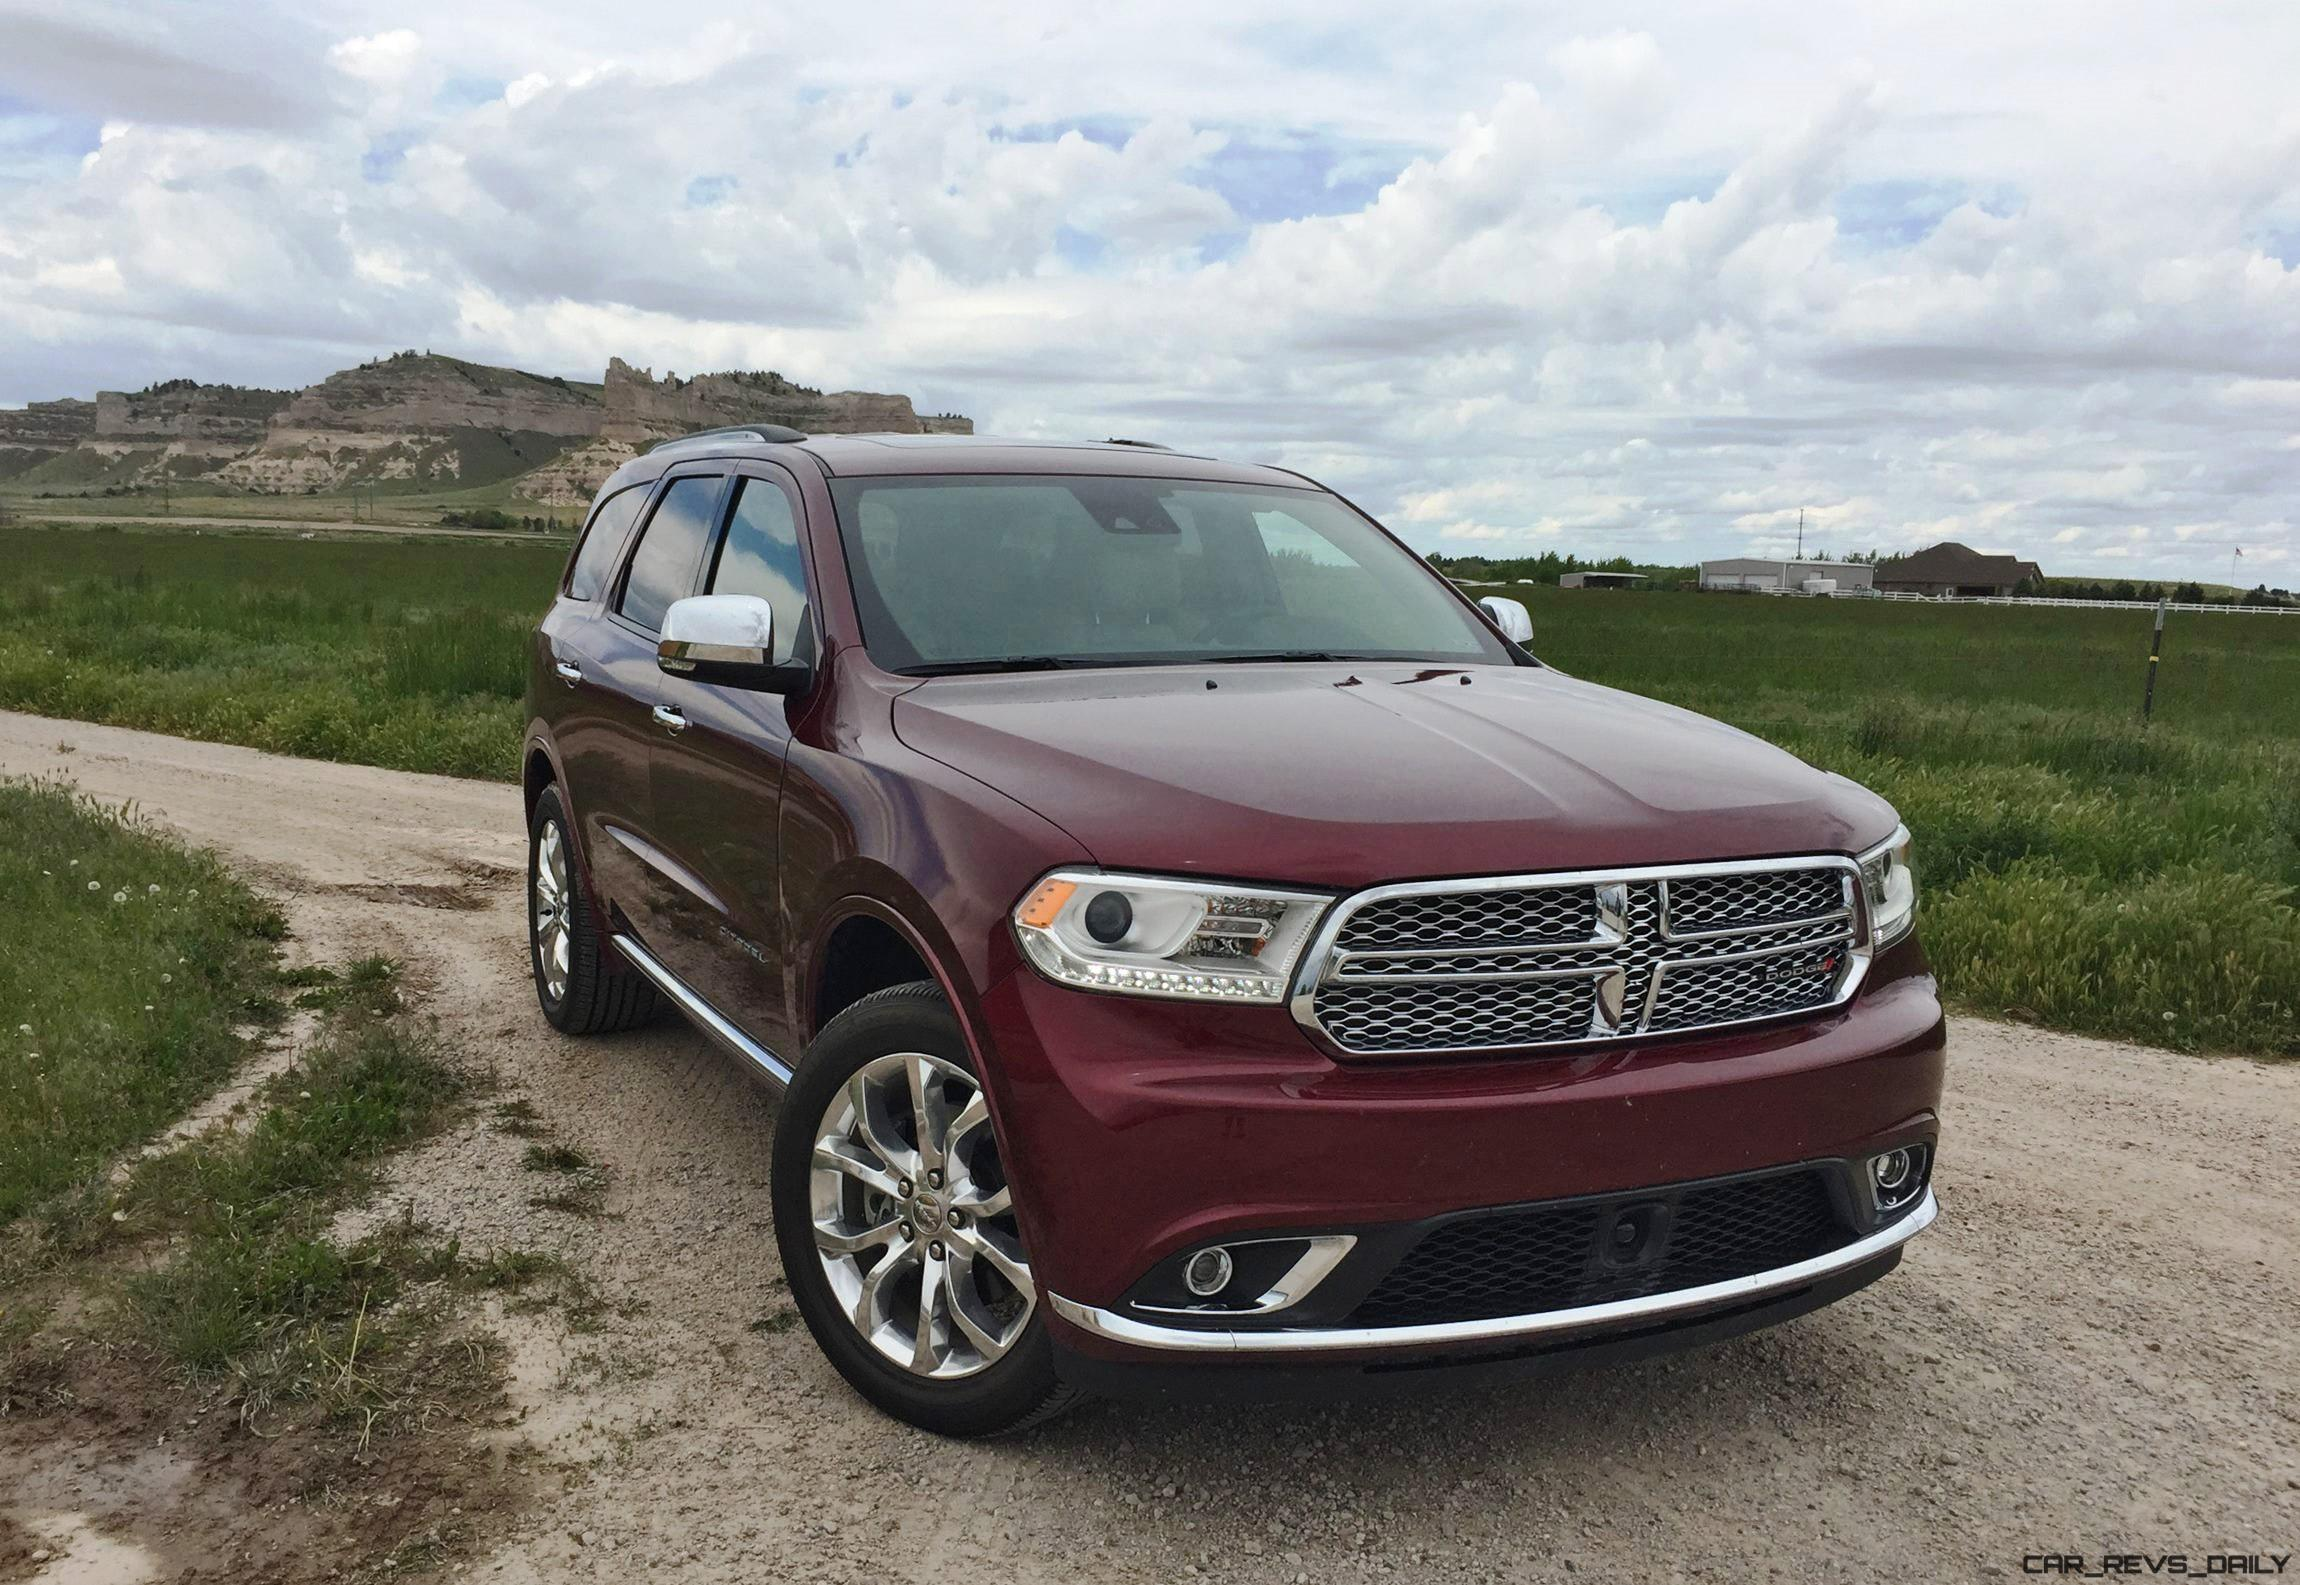 road test review 2016 dodge durango by tim esterdahl. Black Bedroom Furniture Sets. Home Design Ideas